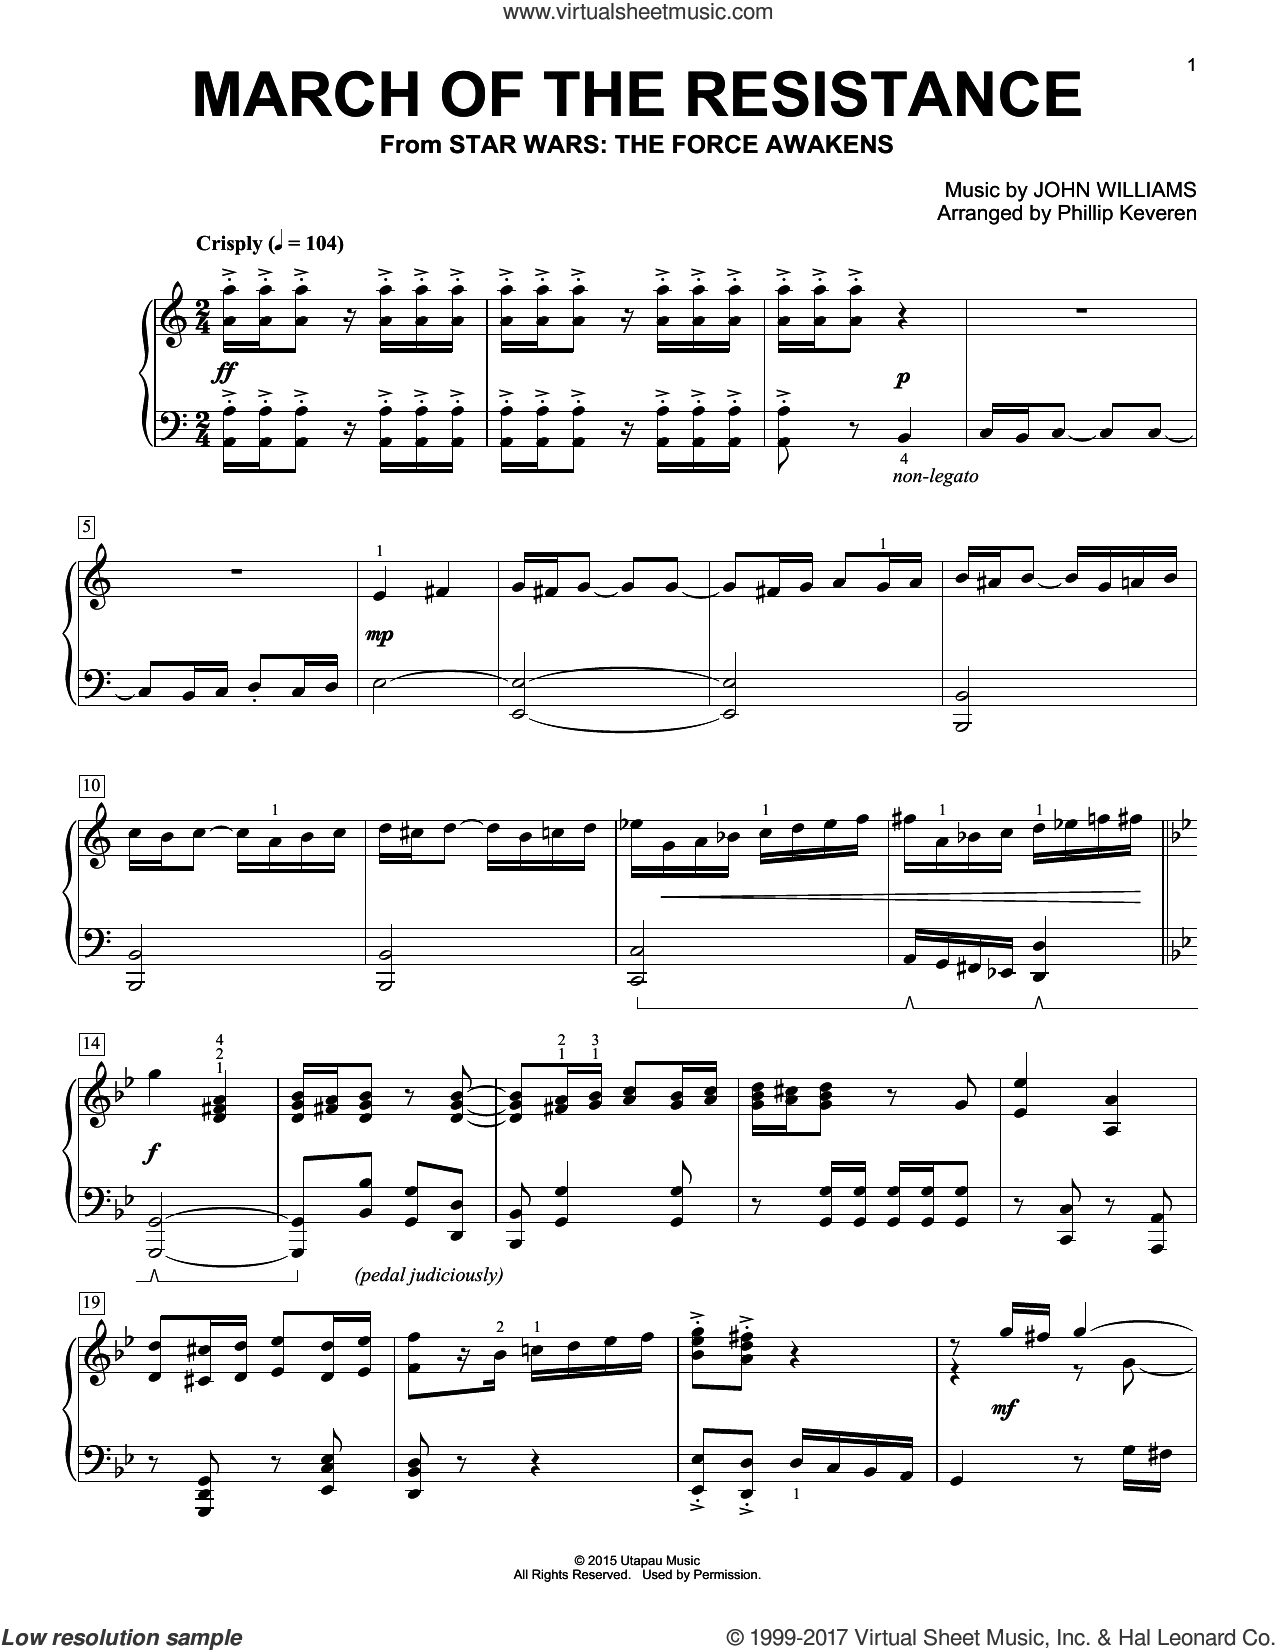 March Of The Resistance sheet music for piano solo by John Williams and Phillip Keveren, intermediate skill level